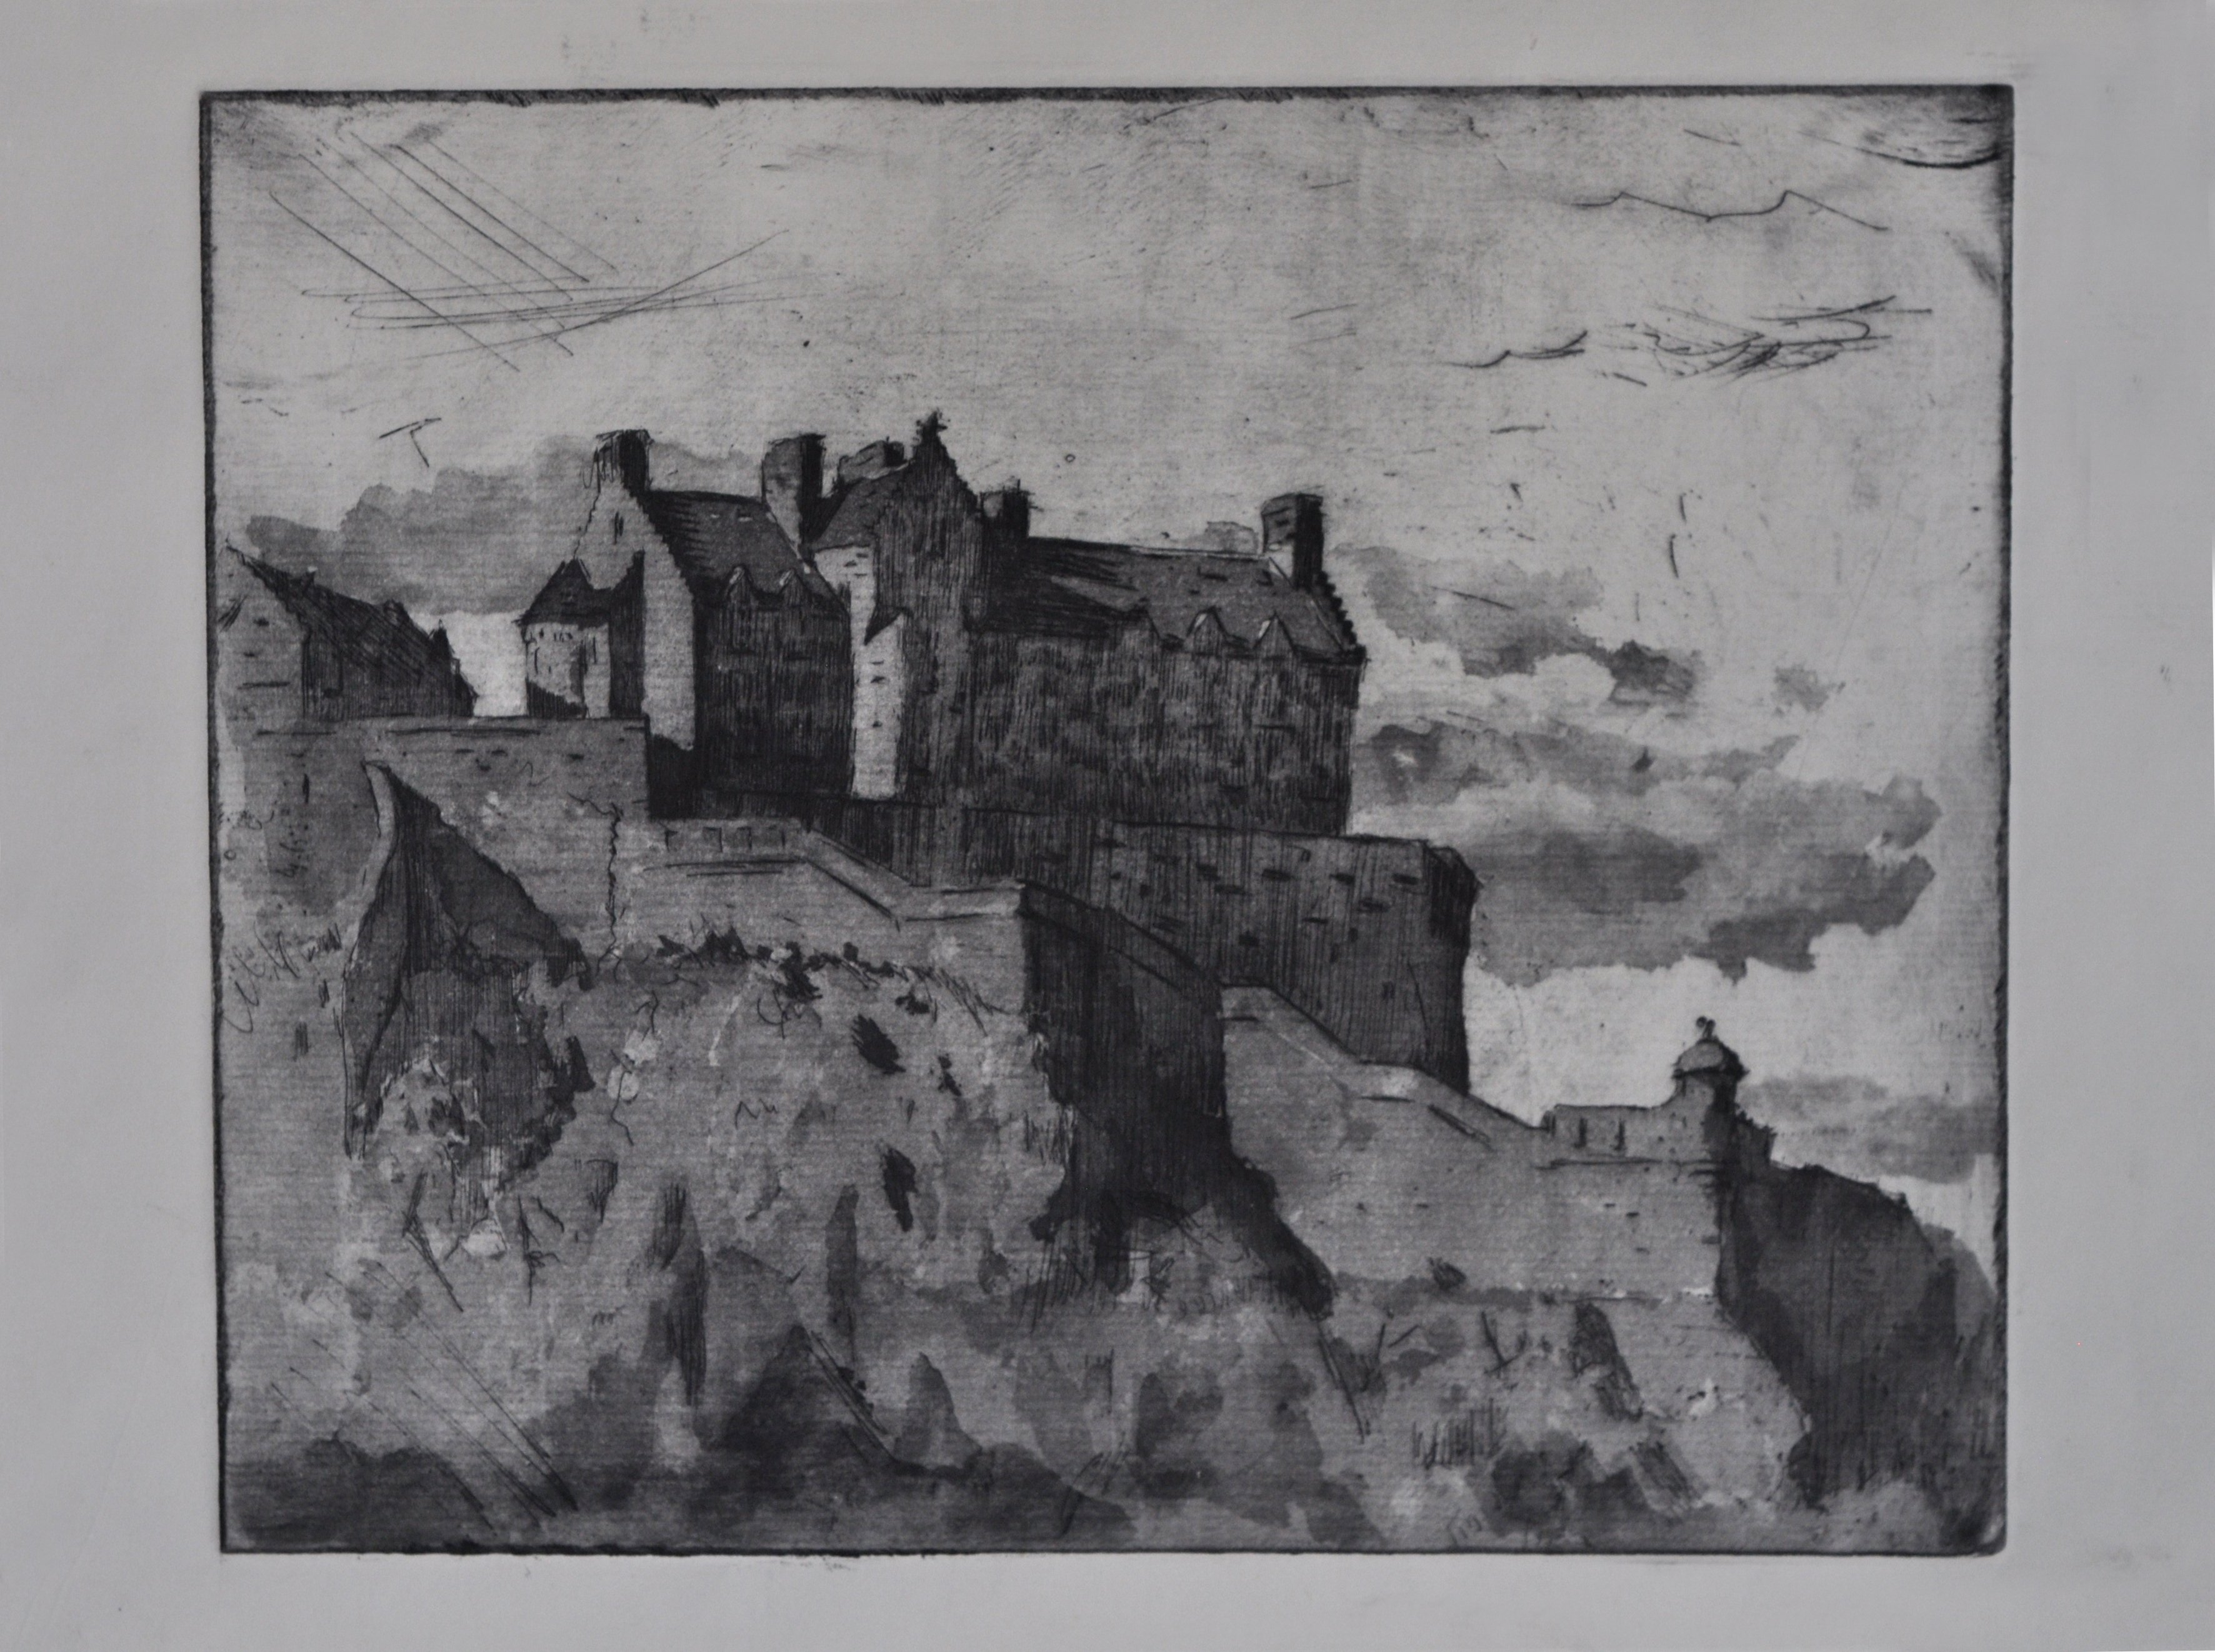 Edinburgh Castle, etching, chris gray, Drawing, sketch, art master, artist, london artist, london fine art studios, fine art studios, london studios, artwork, painting, oil painting, art classes, art workshops, art class, professional artist, london studios